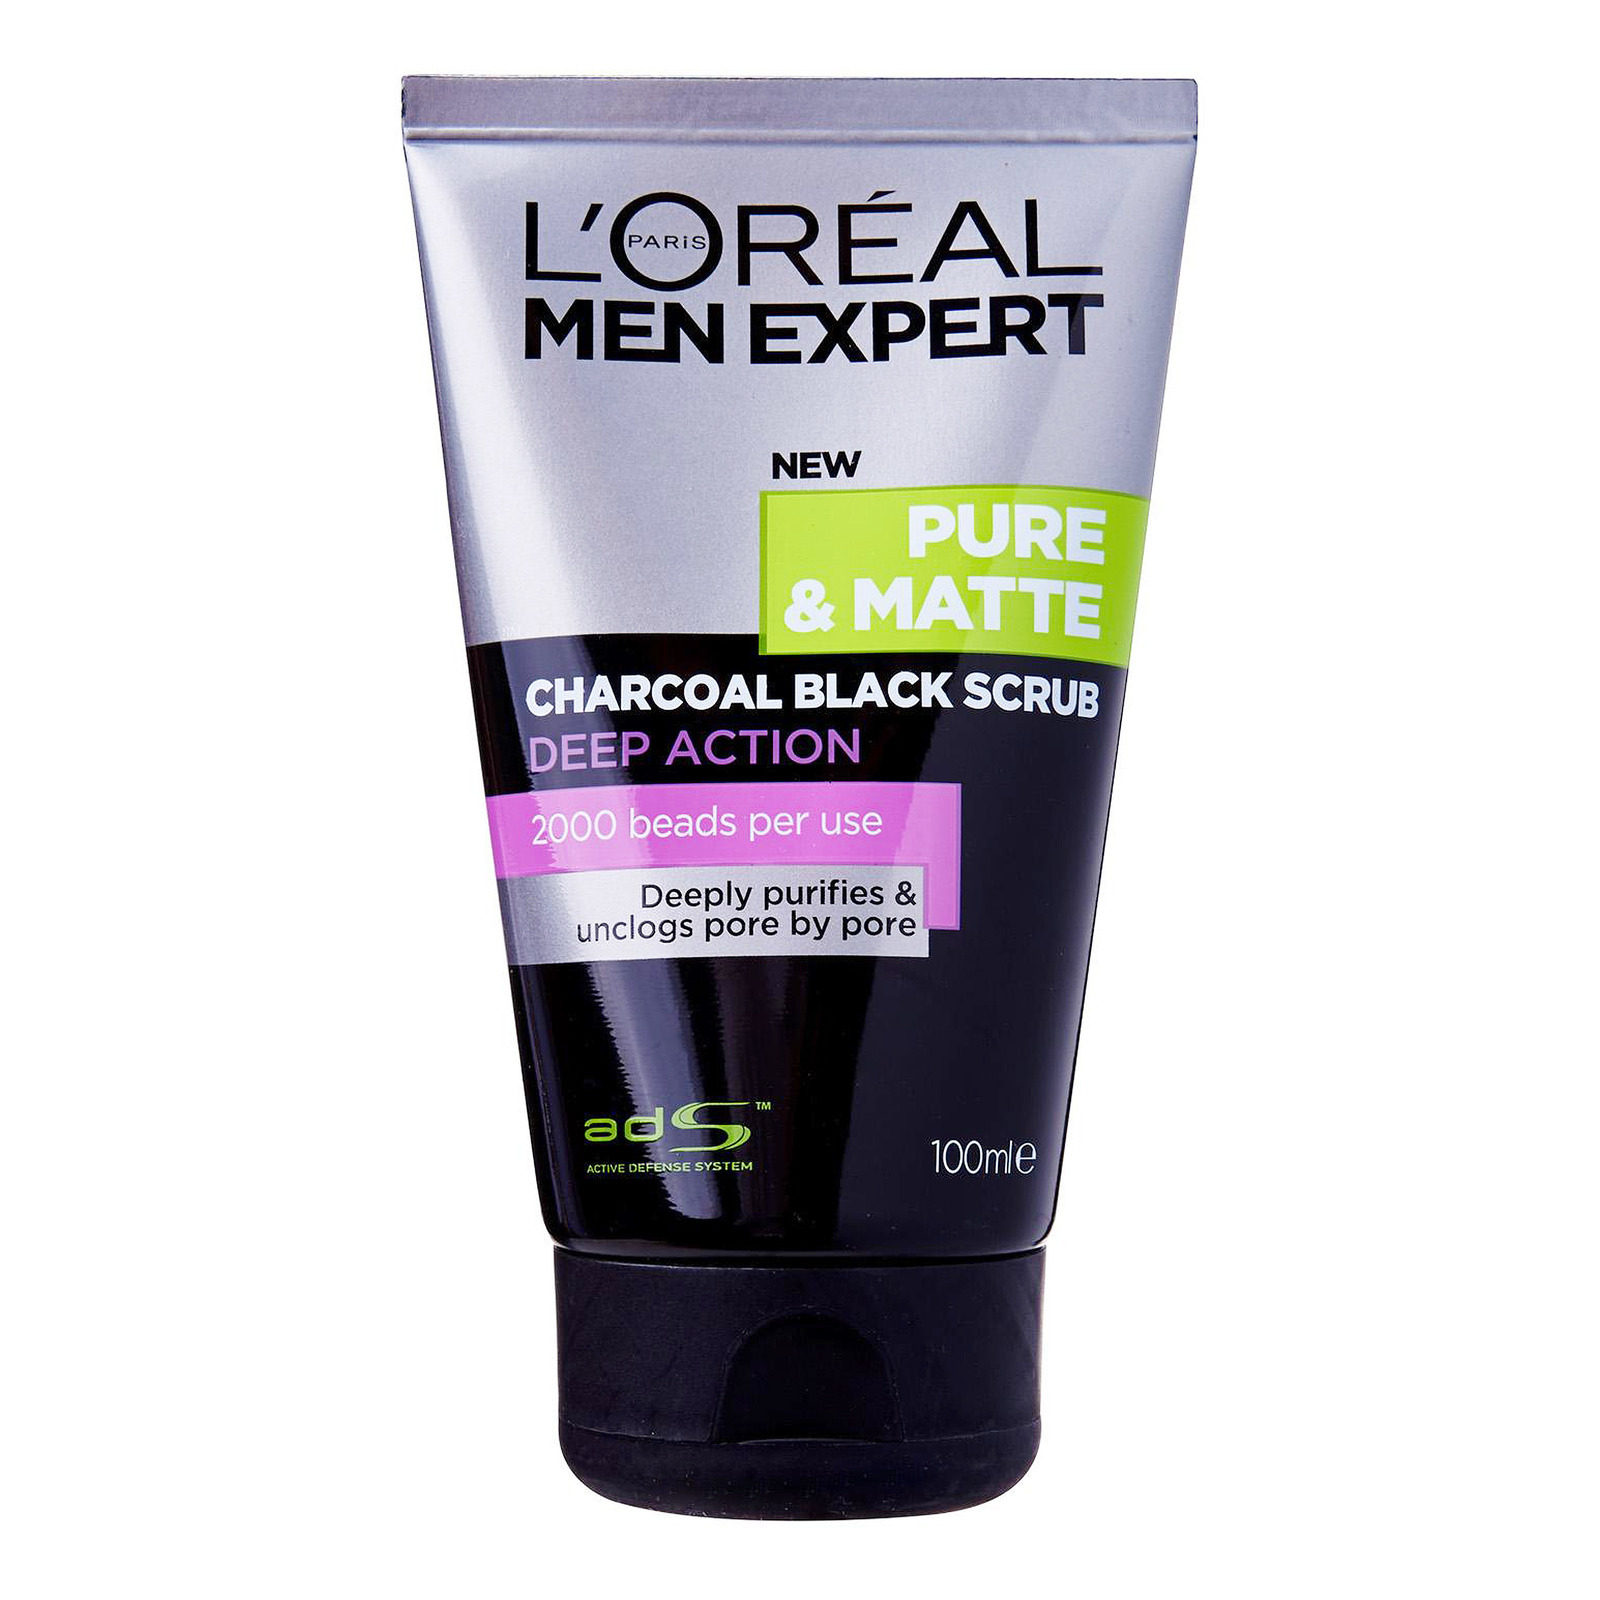 L'Oreal Paris Men Expert Facial Scrub - Charcoal Black